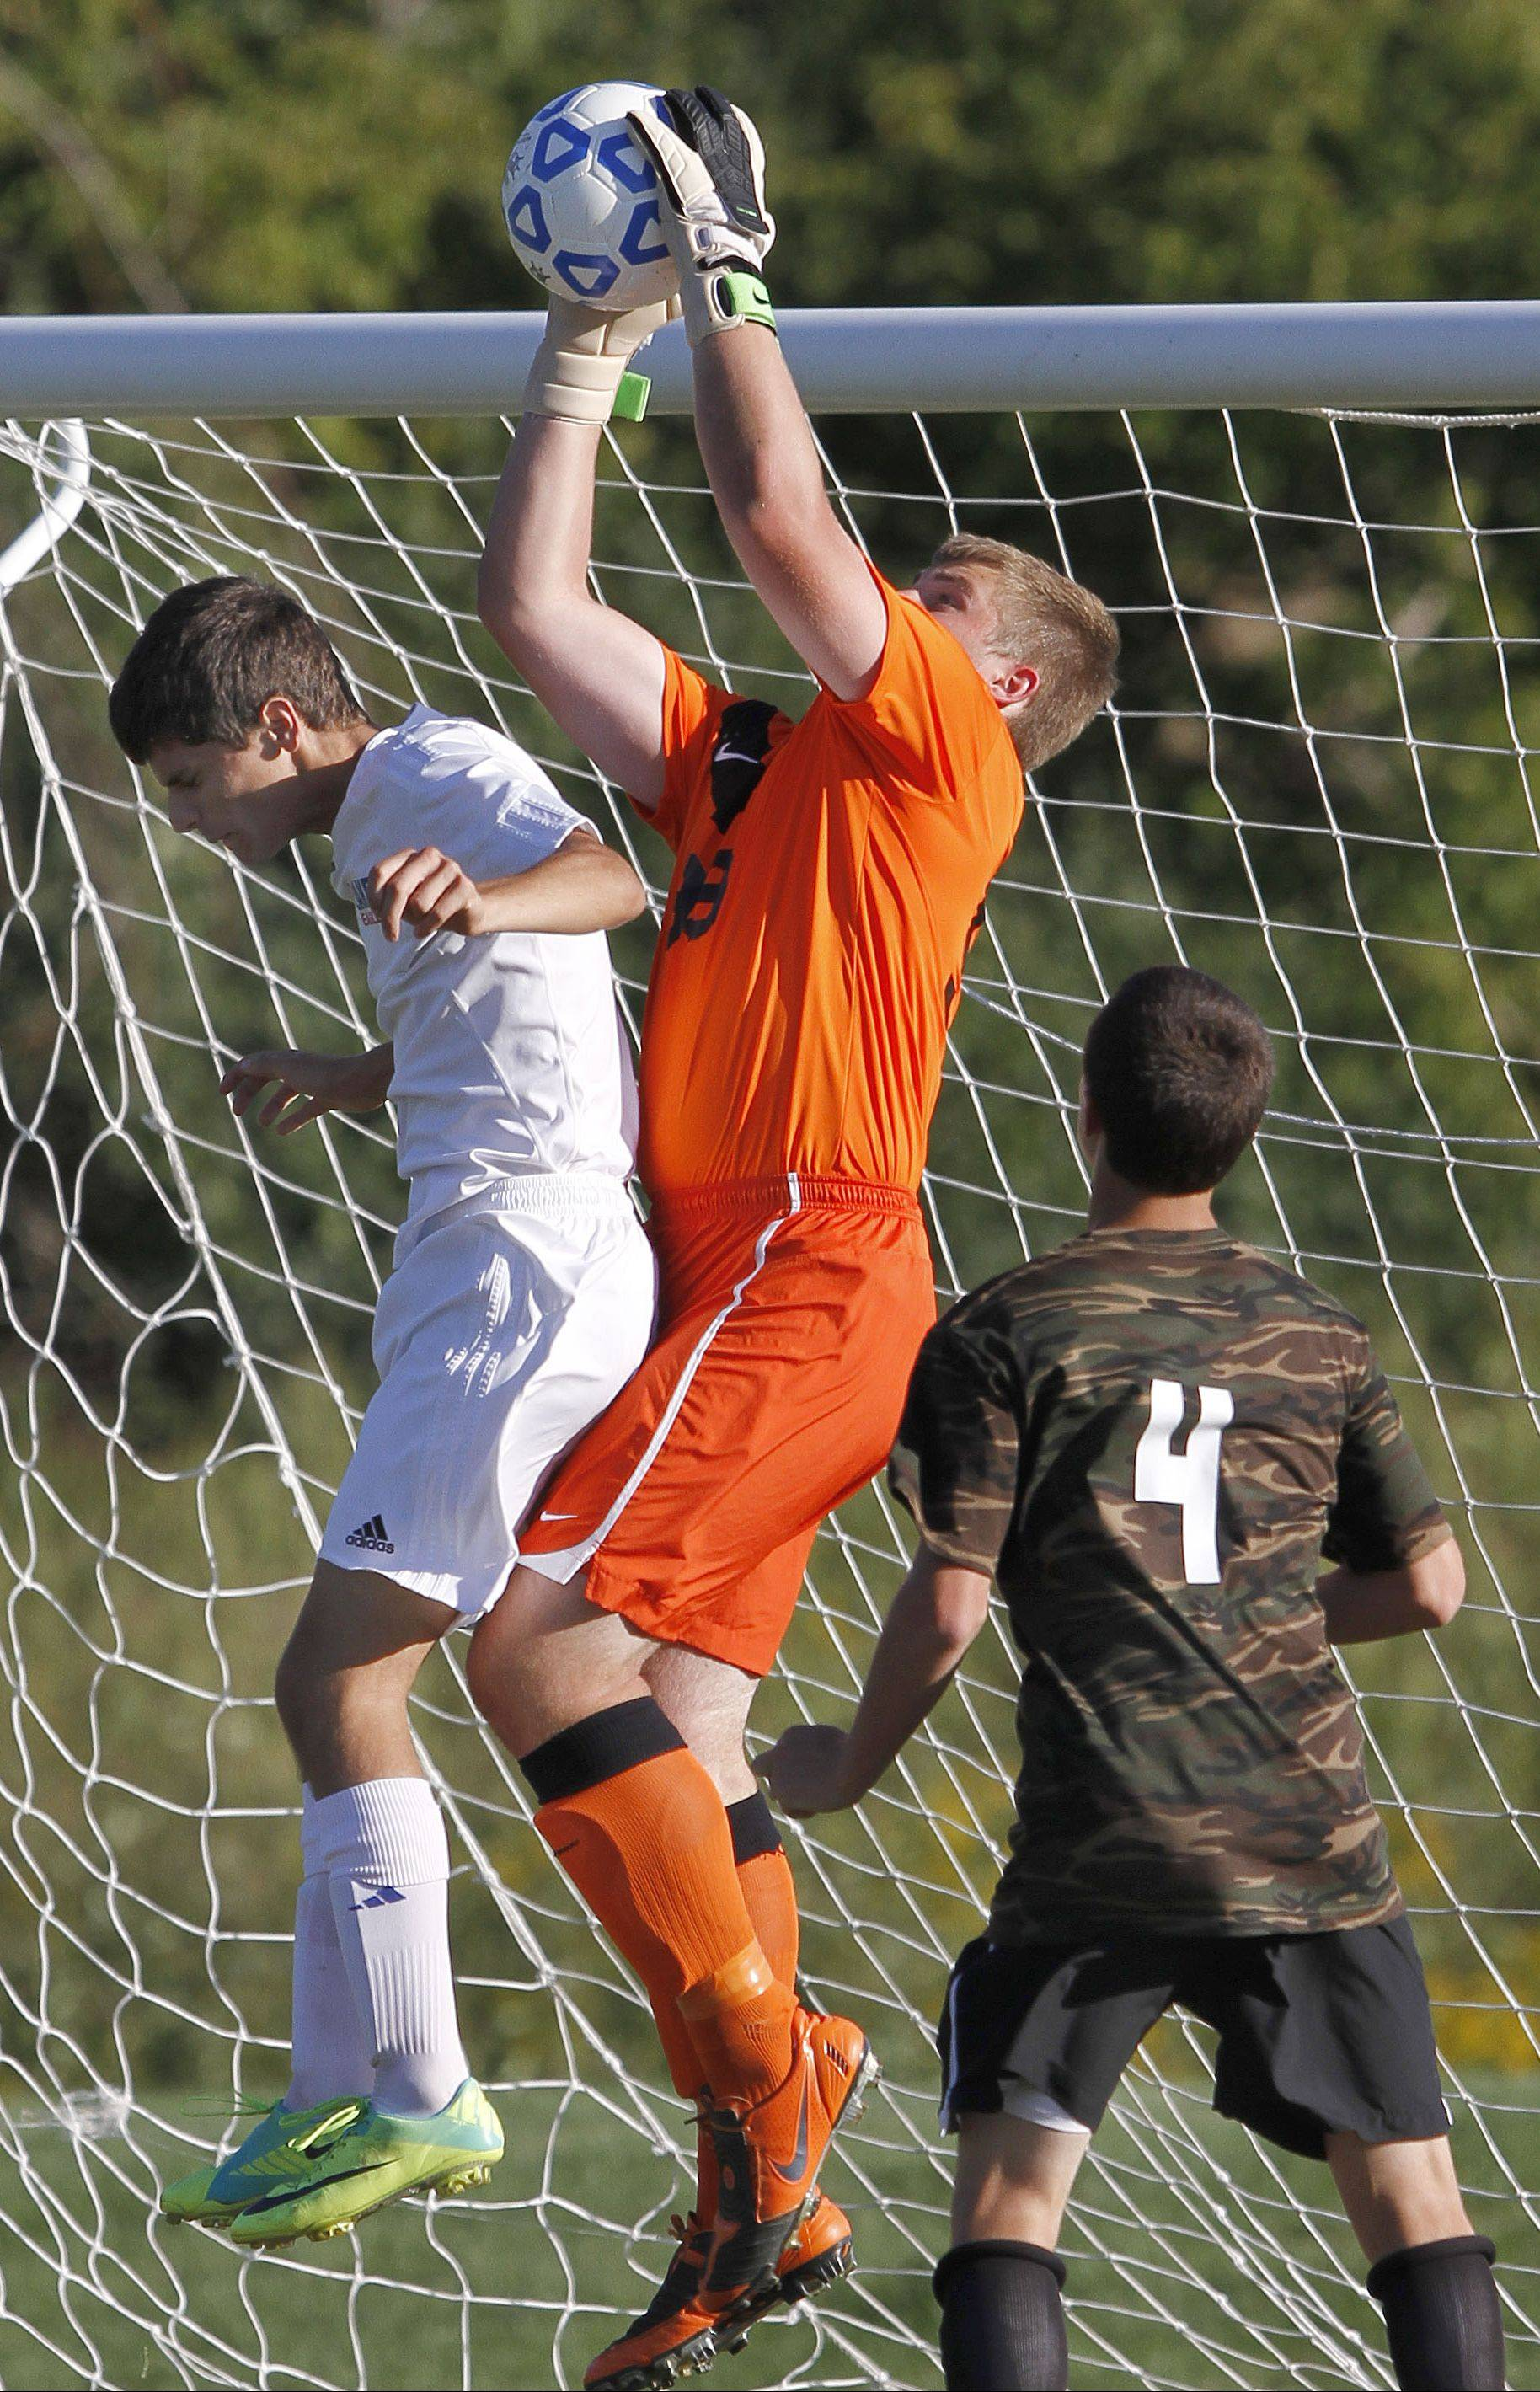 Antioch goalie Tommy Tritschler, middle, goes up for a ball with Lakes' Joey Savino as Antioch's Thomas Furlong looks on Tuesday at Lakes.